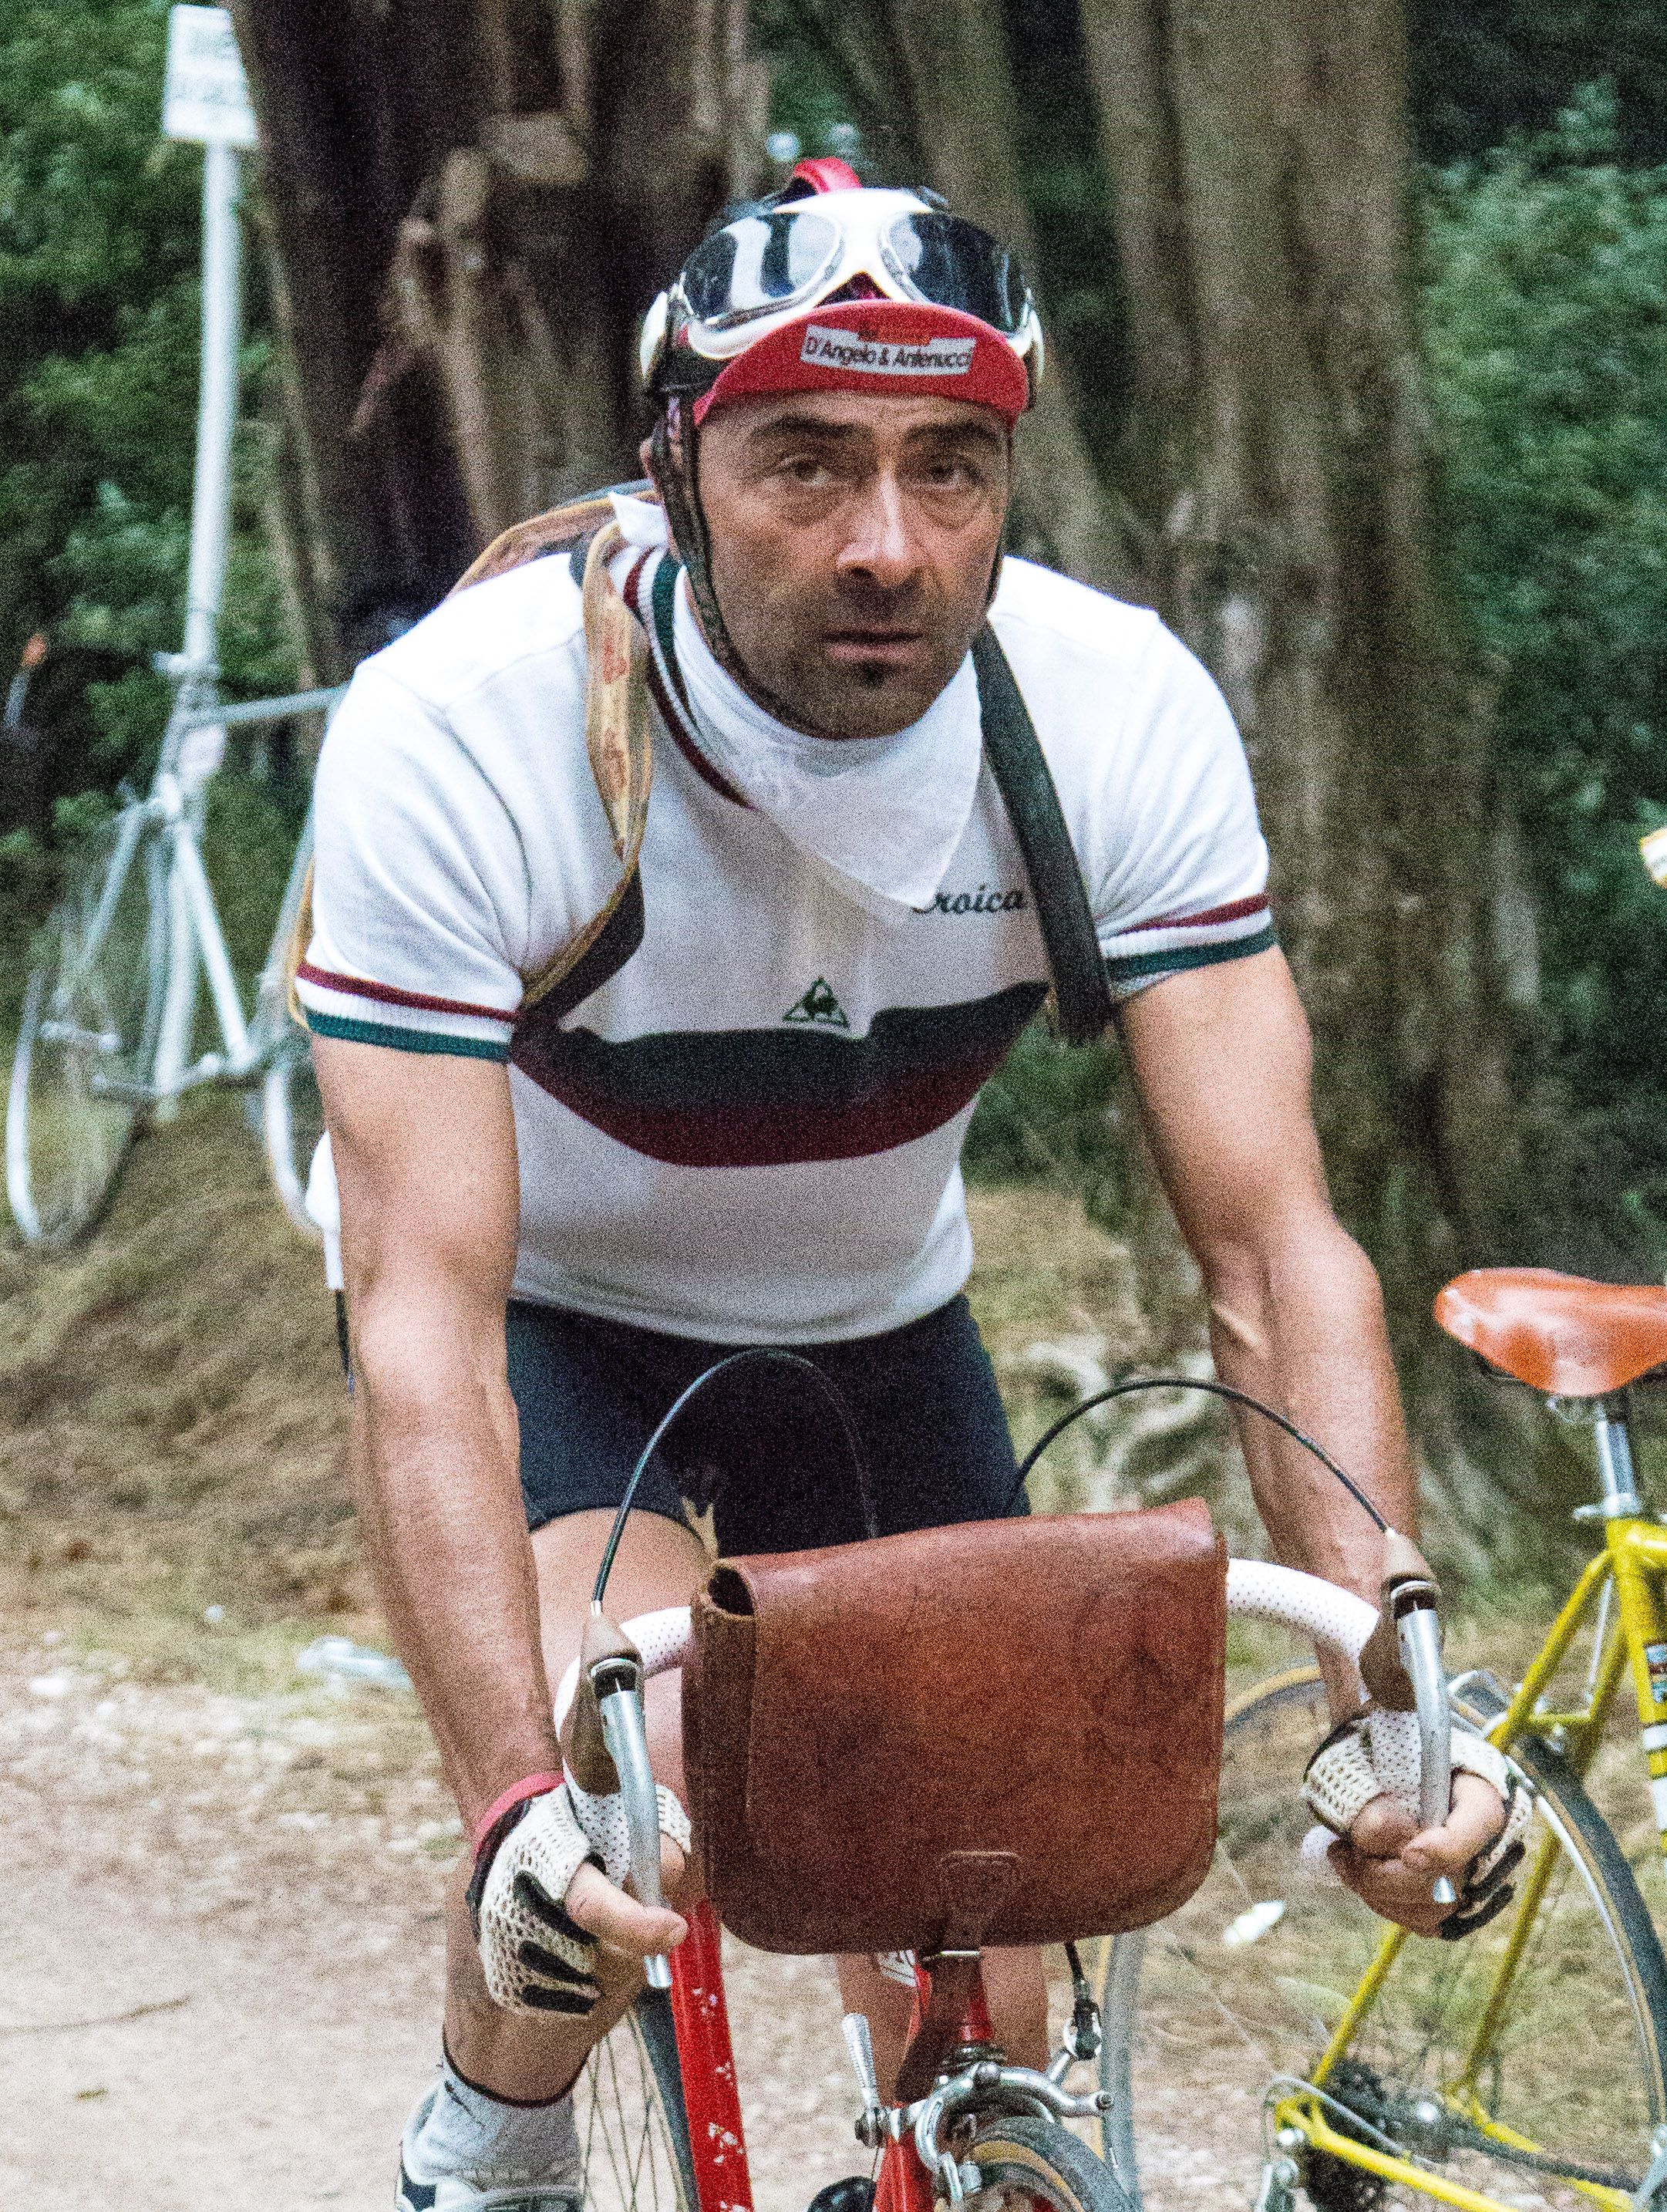 Descending the strade bianche